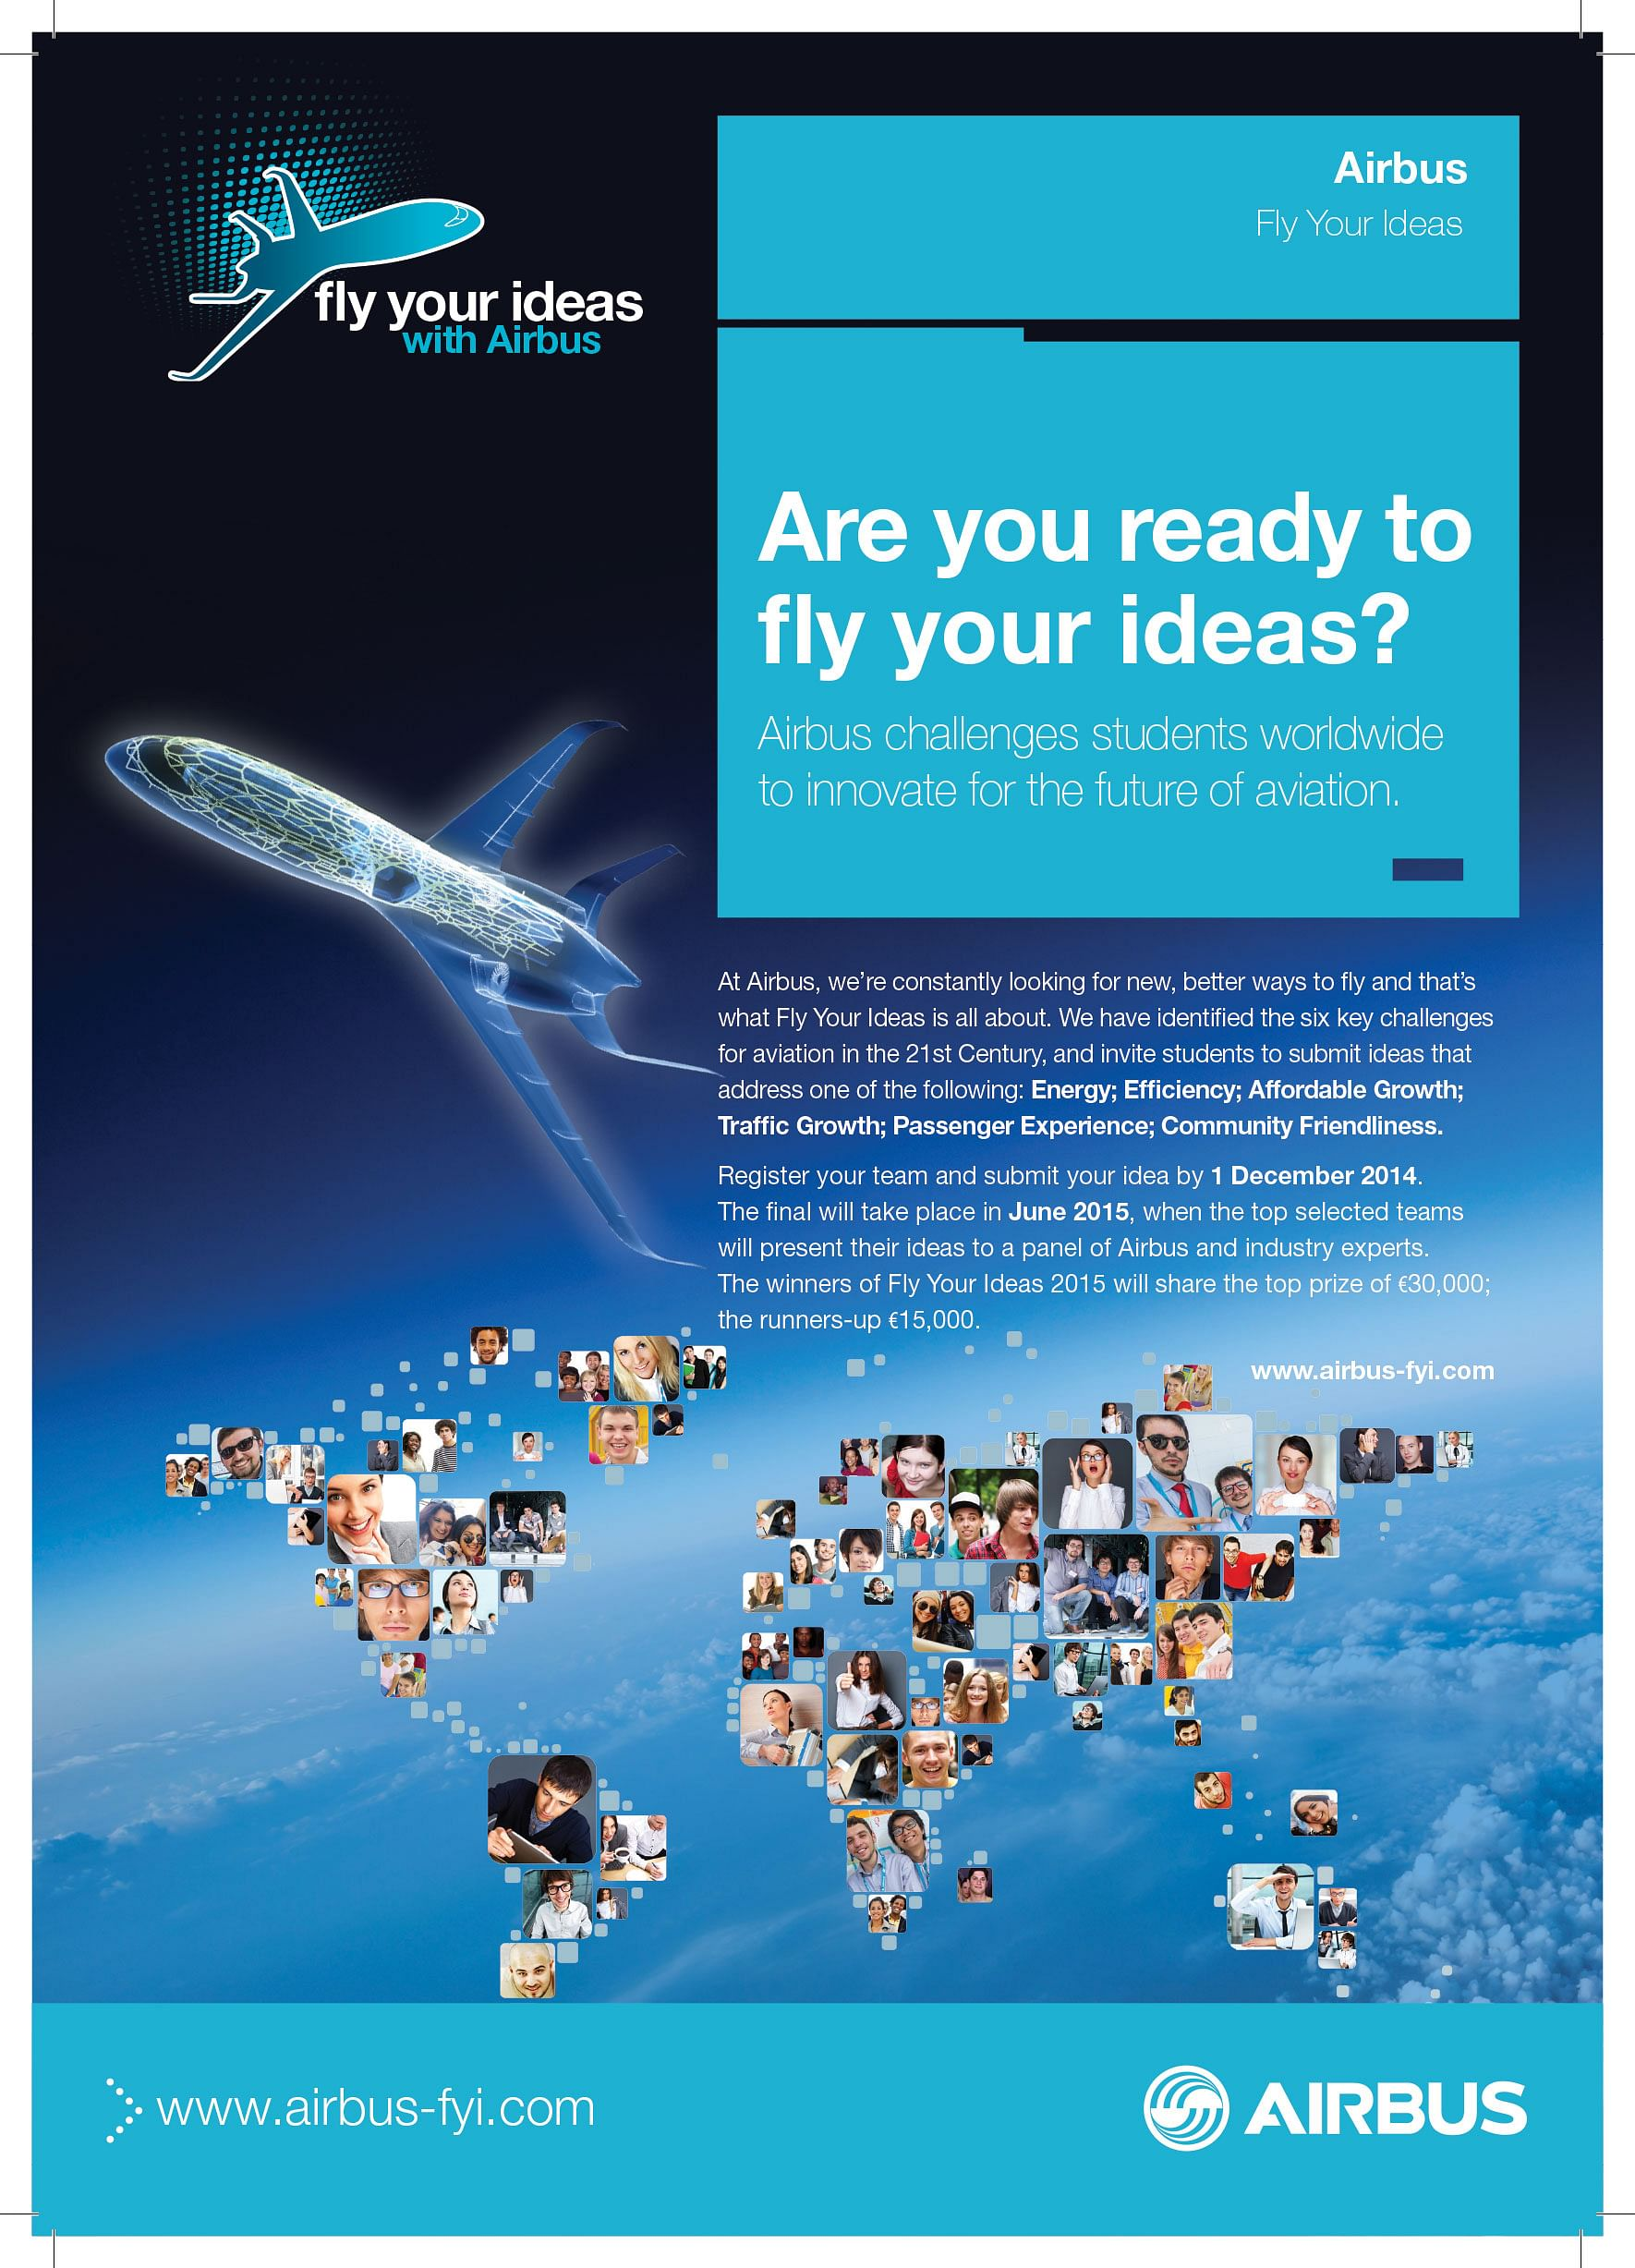 airbus_fly_your_ideas_poster